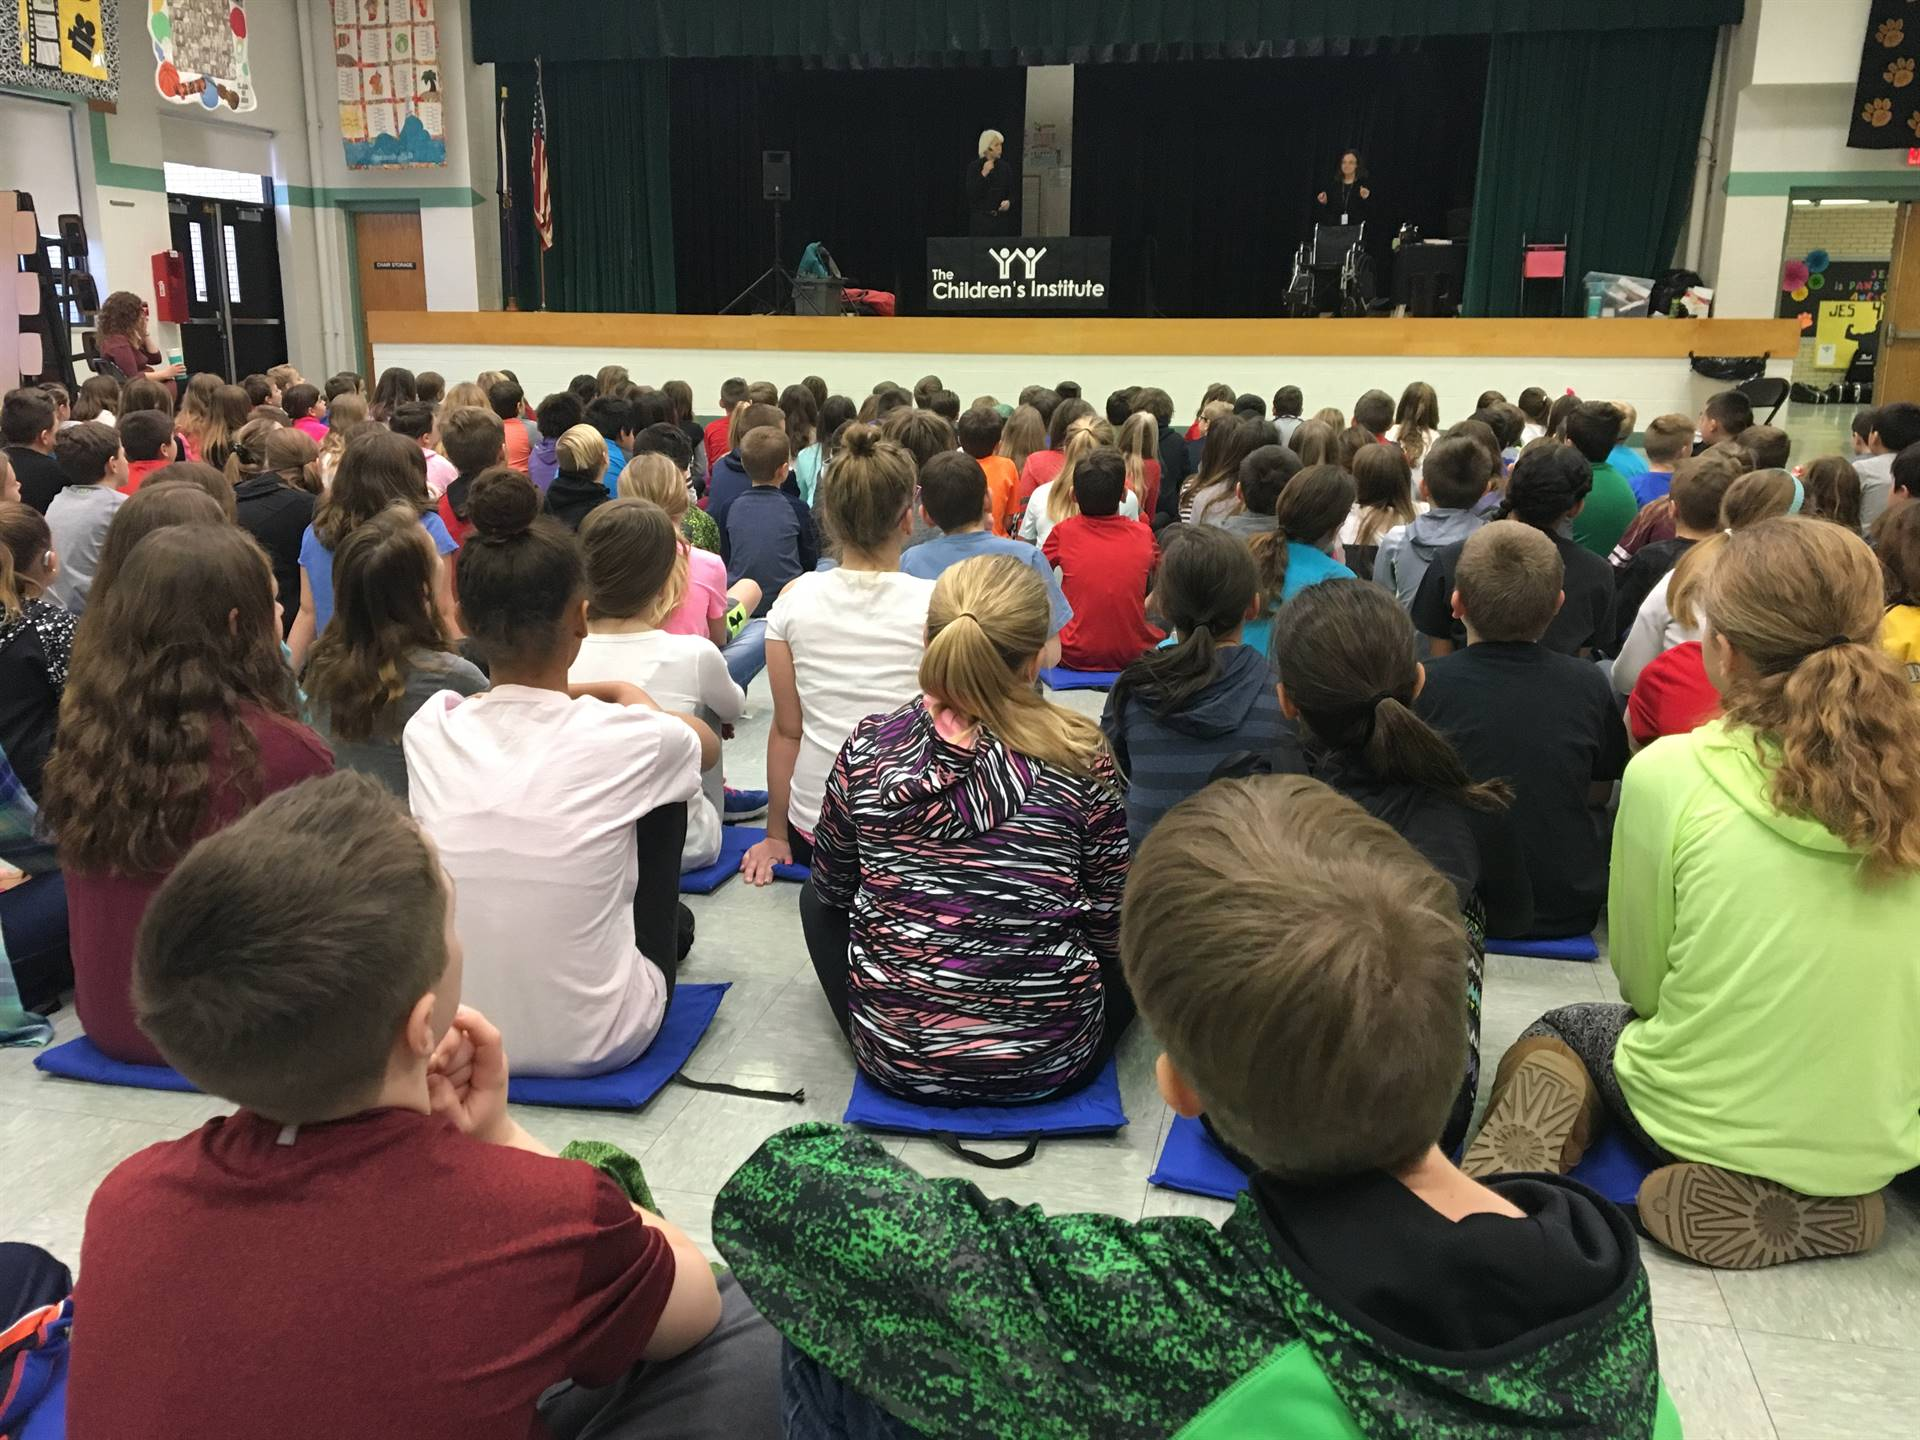 Children's Institute Assembly